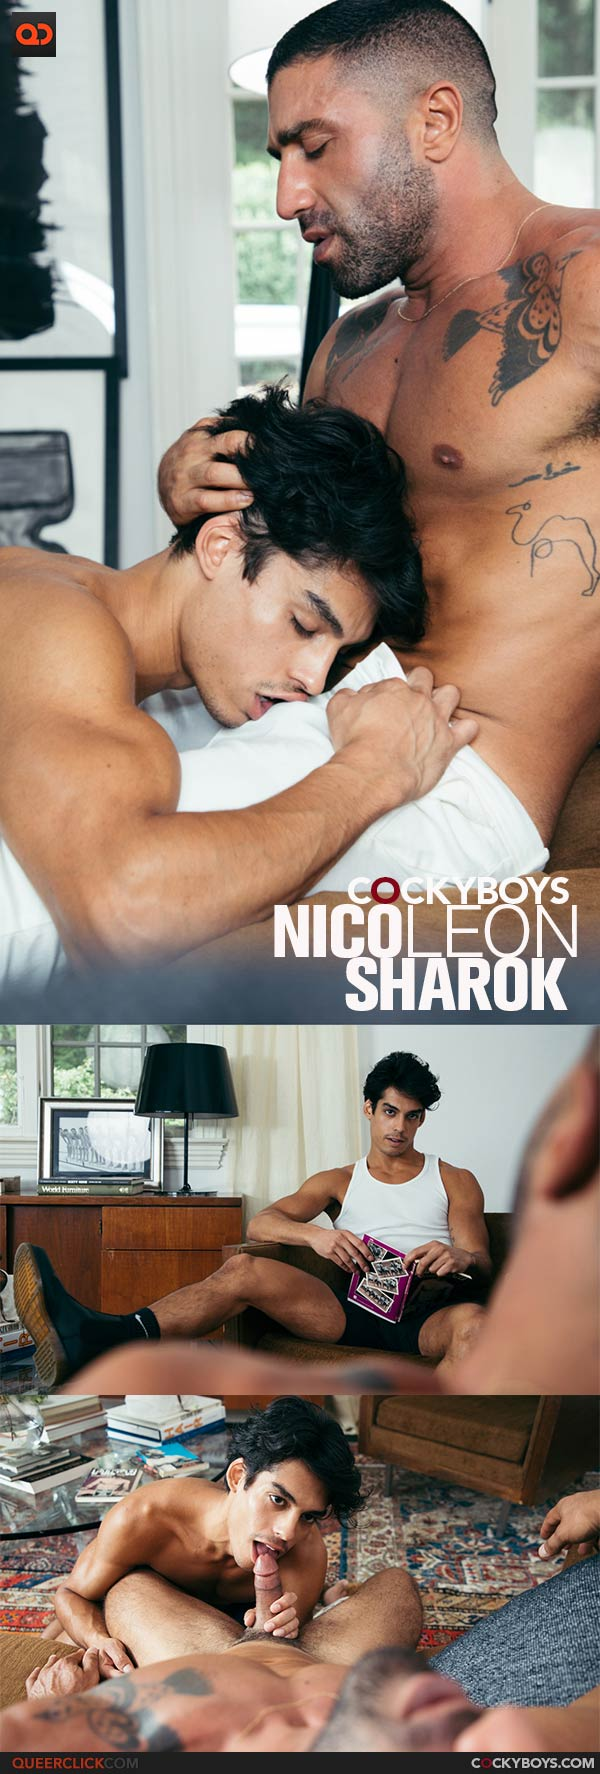 Actor Porno Sharok qcmain at queerclick - page 25 of 4248